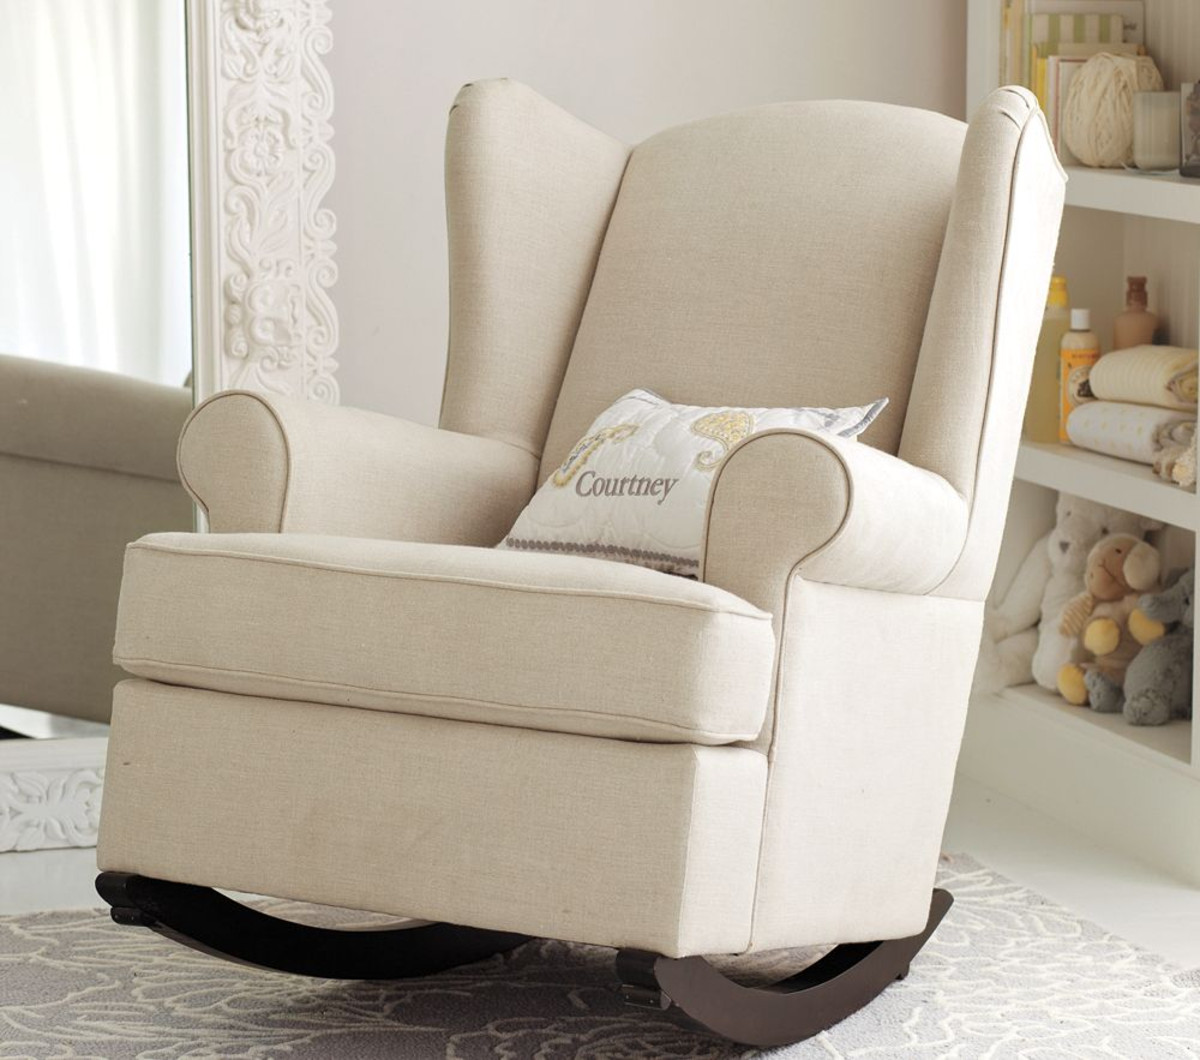 Image of: Rocking Chair for Nursery